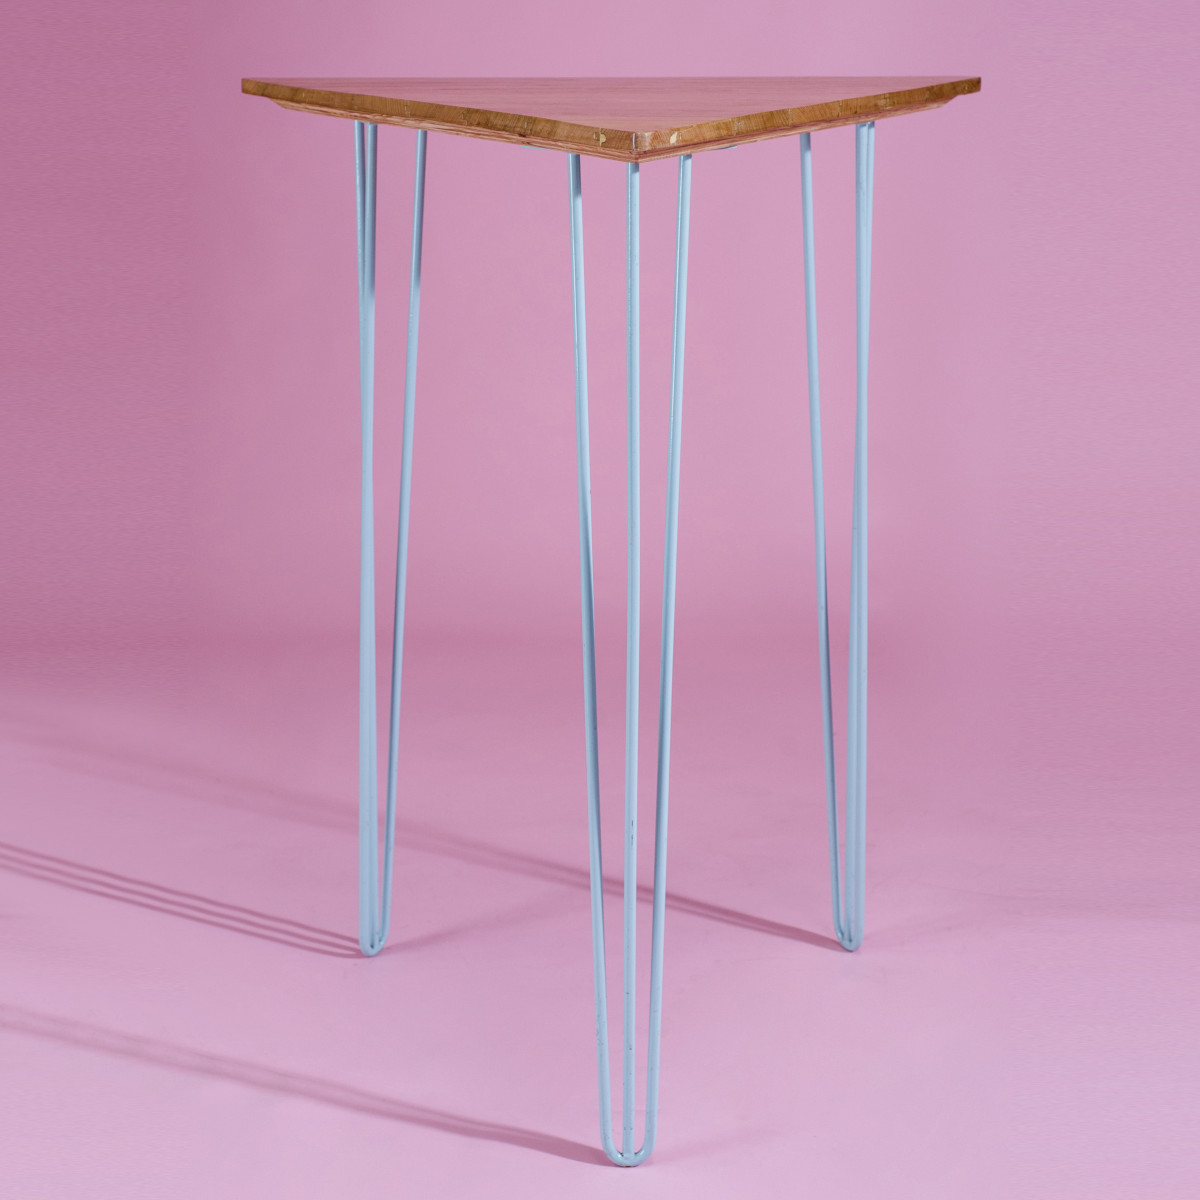 BA032-Triangle + Blue High Bar Table-1